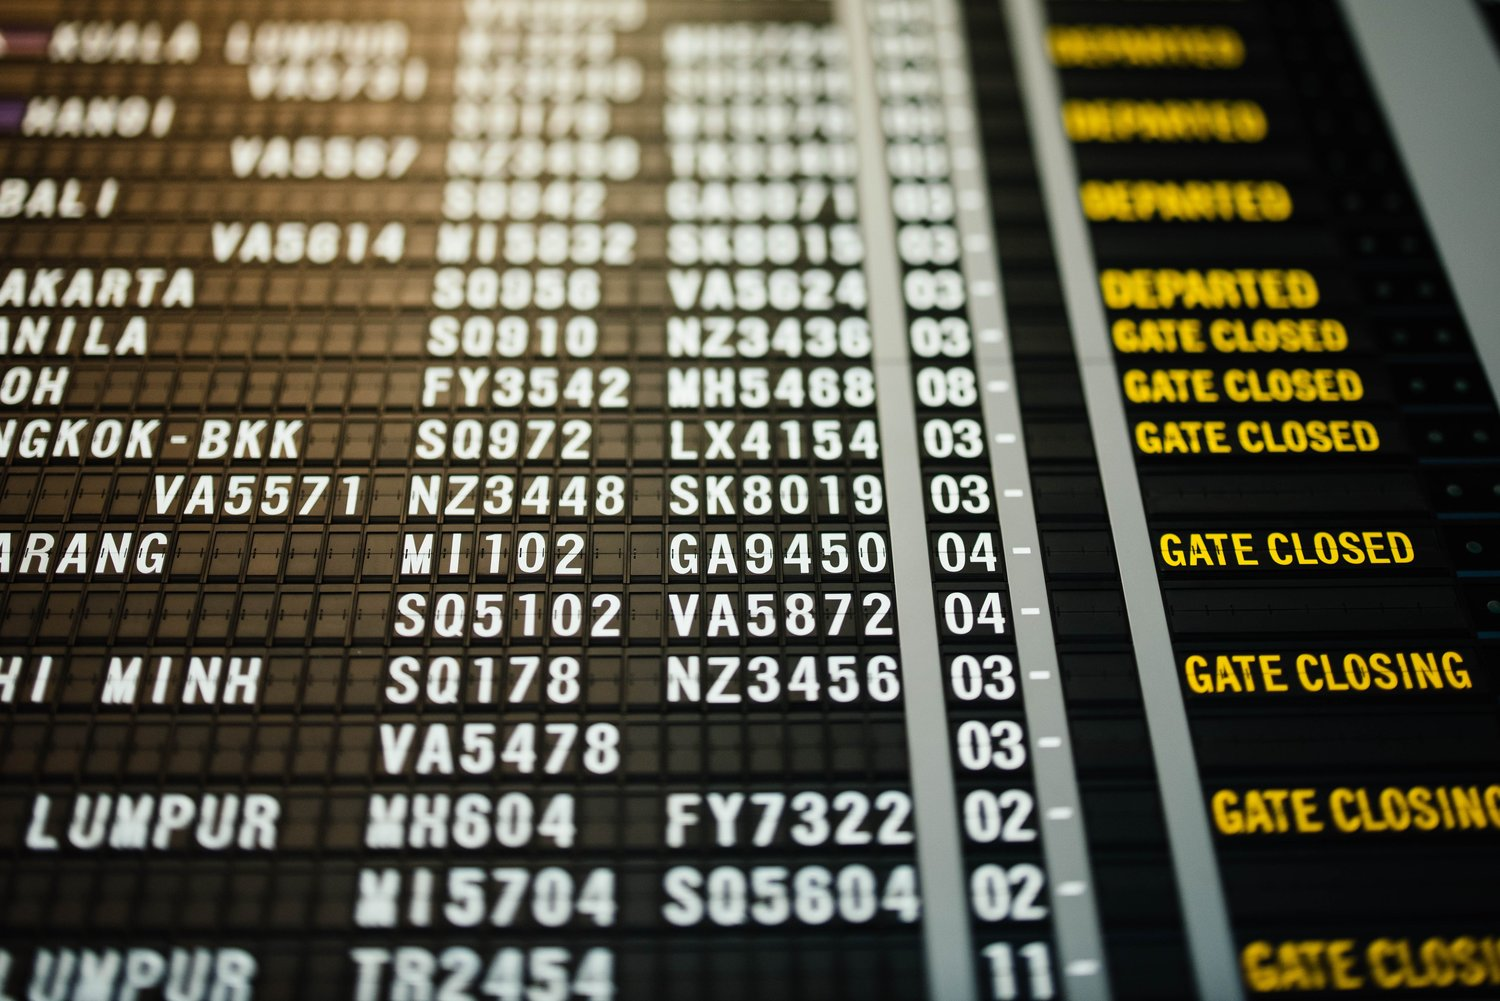 The days of airport boards like this are over. (Photo by chuttersnap on Unsplash.com)